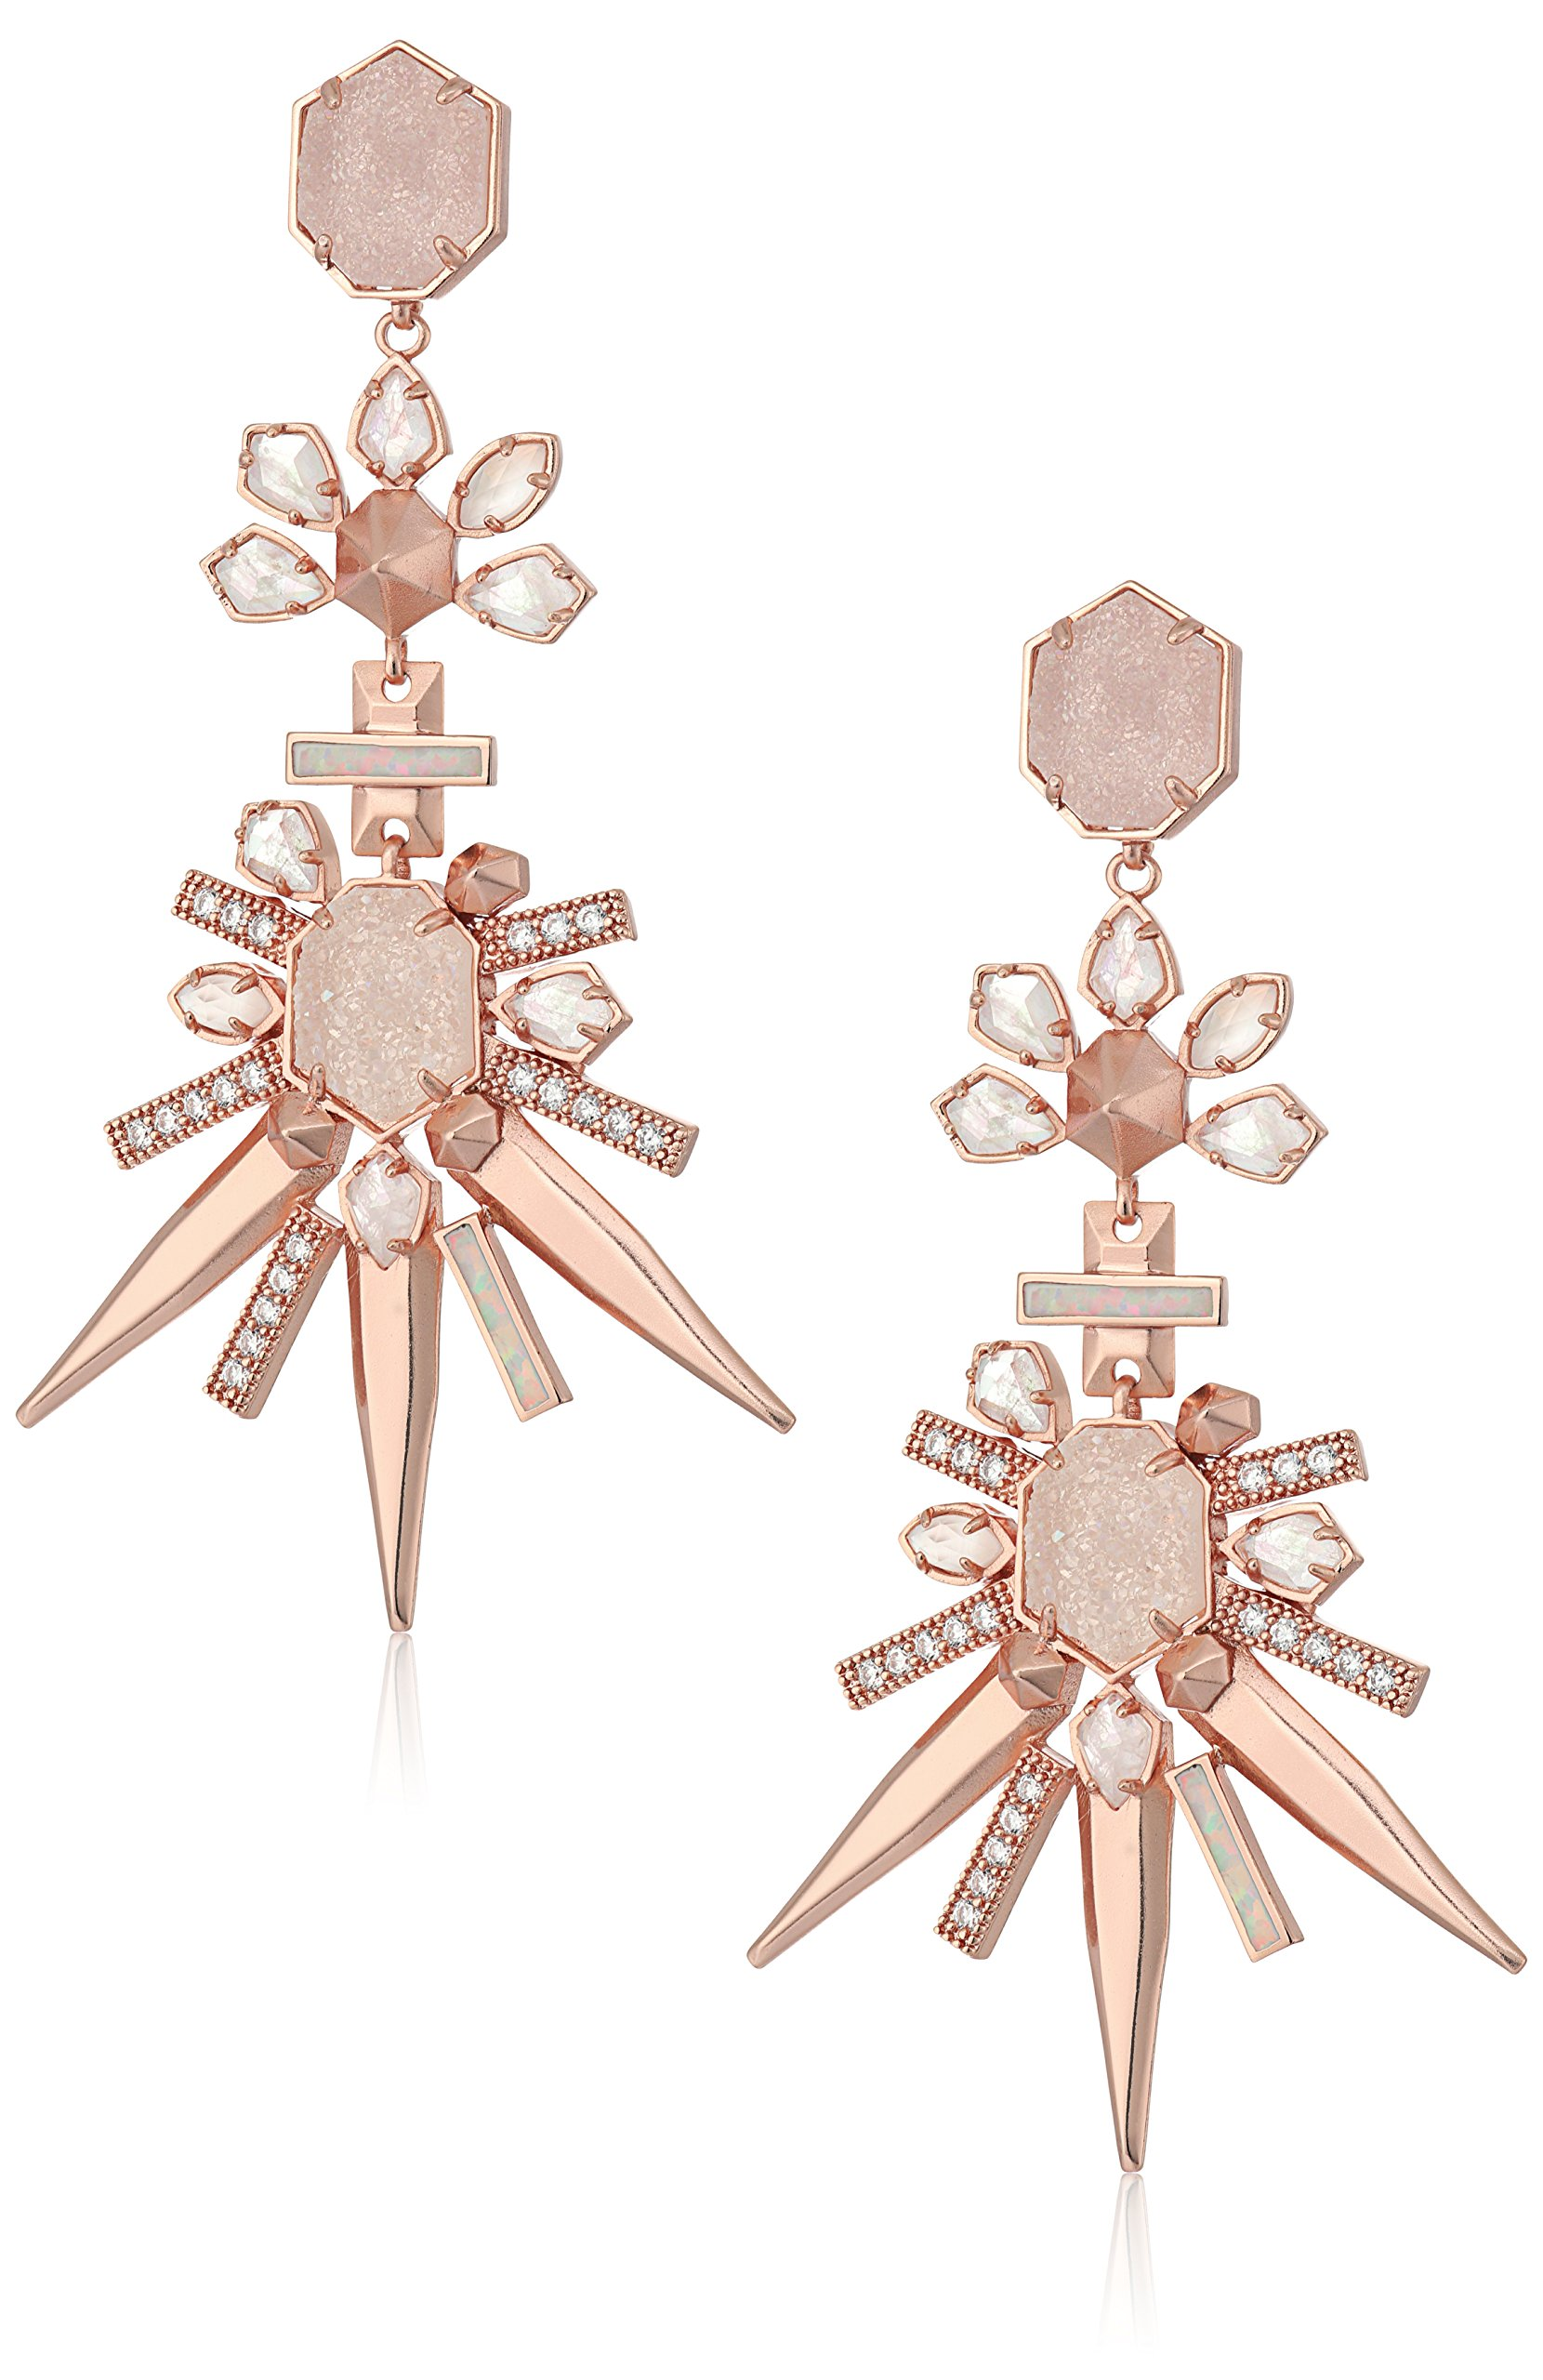 Kendra Scott Isadora Rose Gold Champagne Colorway Earrings by Kendra Scott